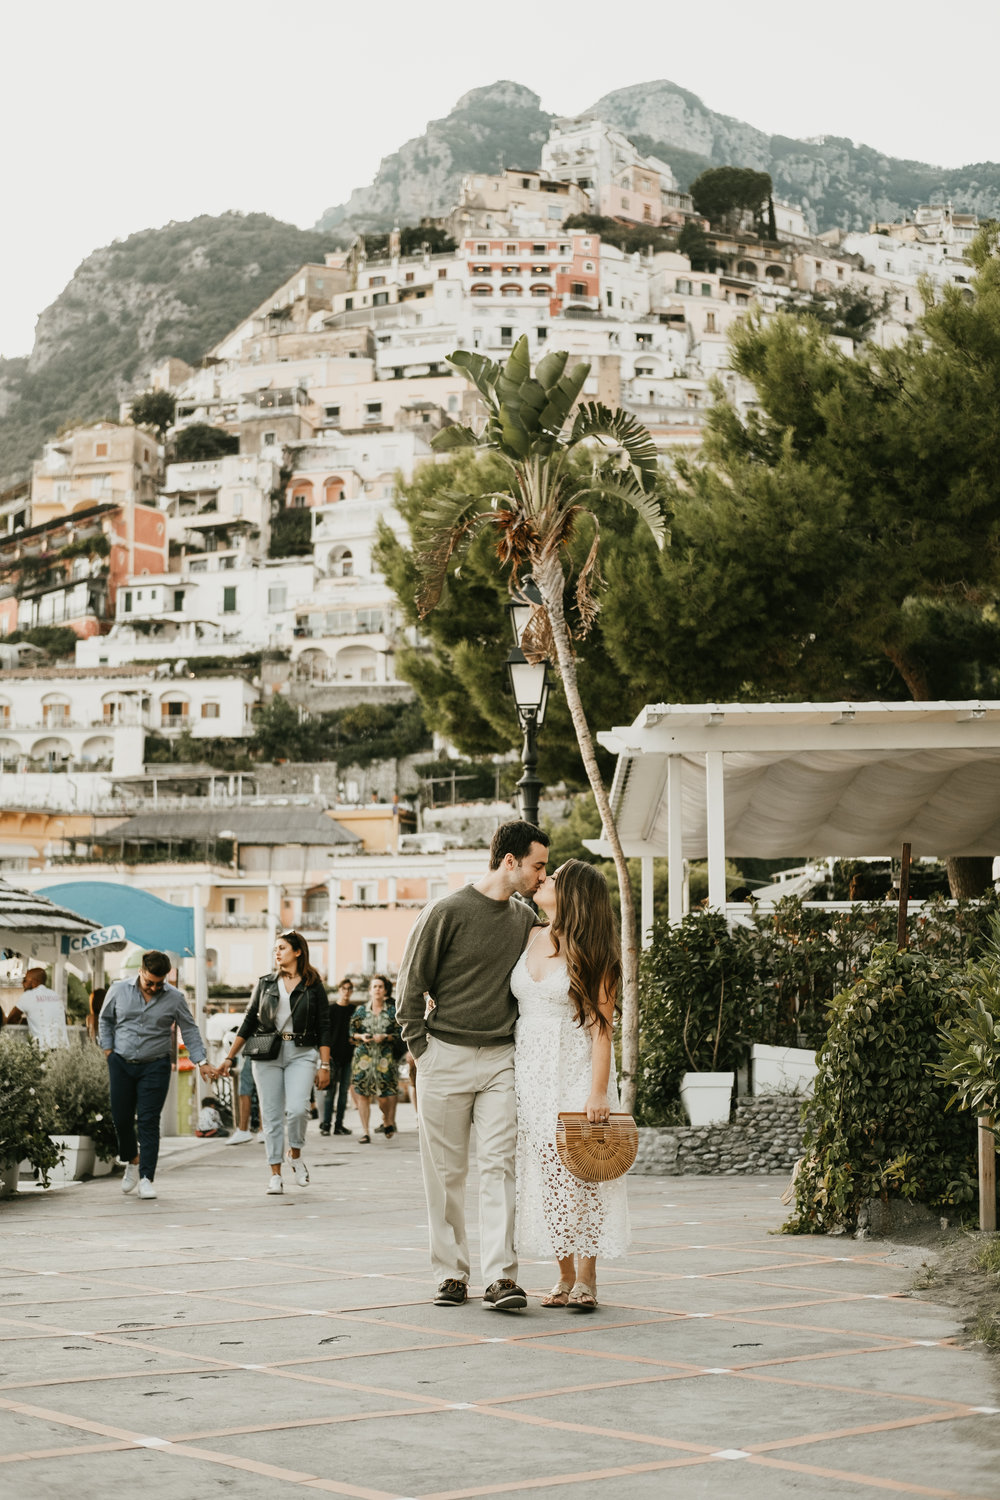 positano-italy-spiagga-honeymoon-amalfi-coast